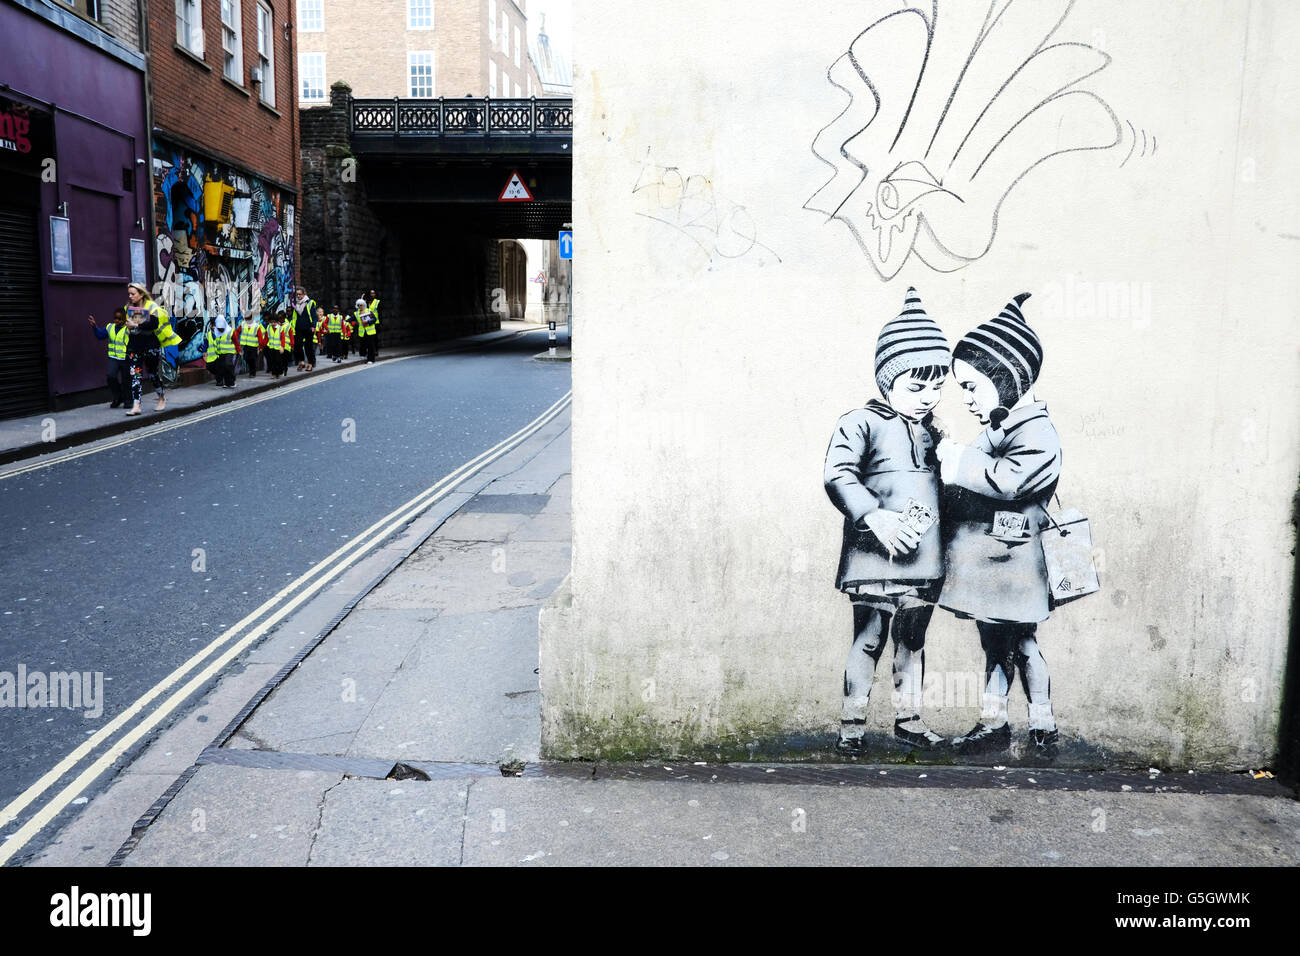 banksy-style-black-and-white-graffiti-of